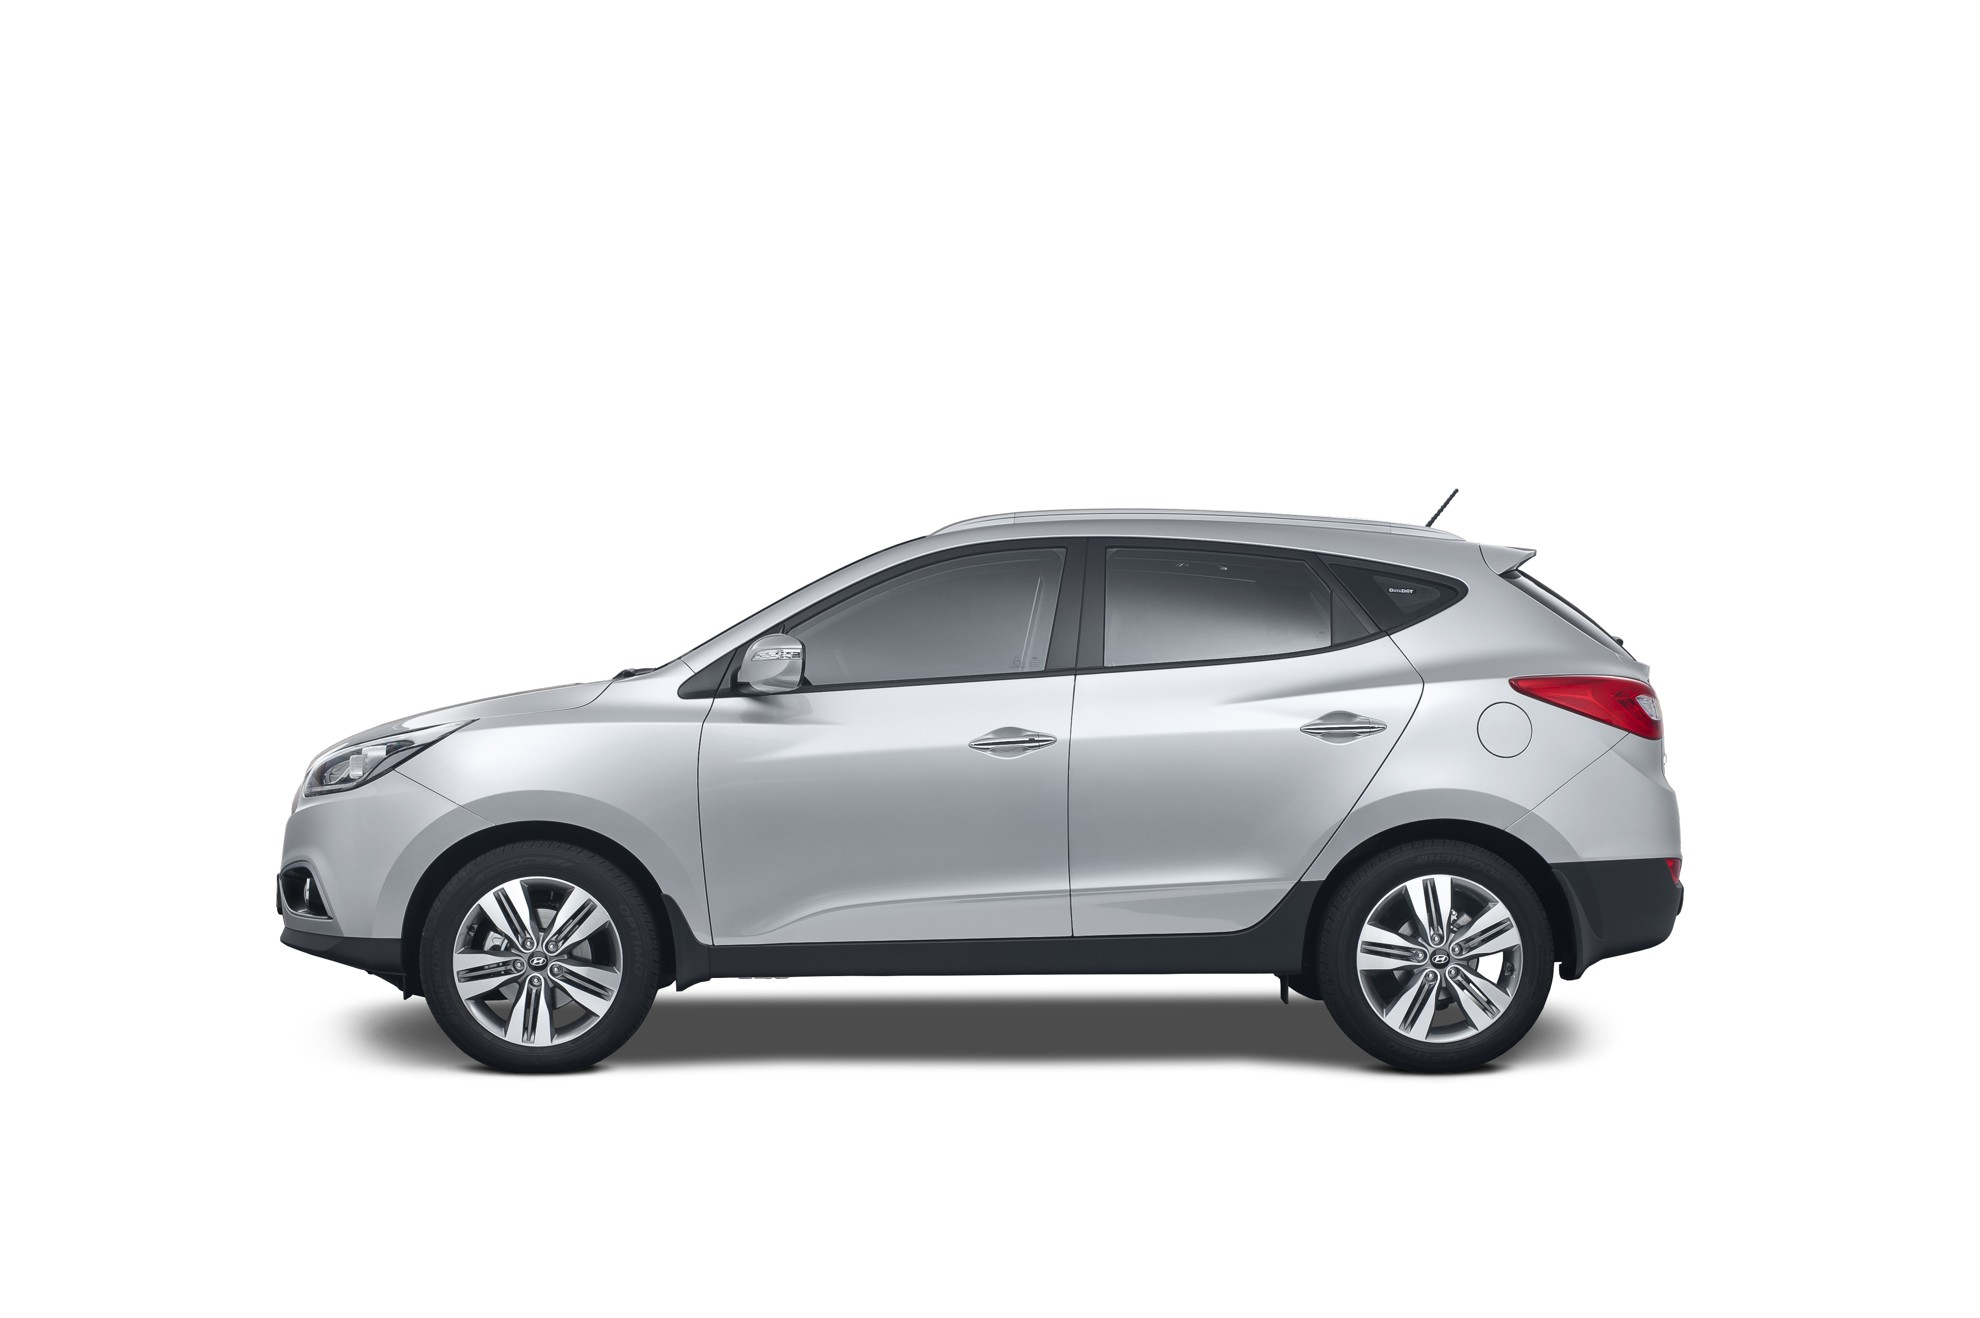 How Much Does The Hyundai Ix35 Cost In South Africa